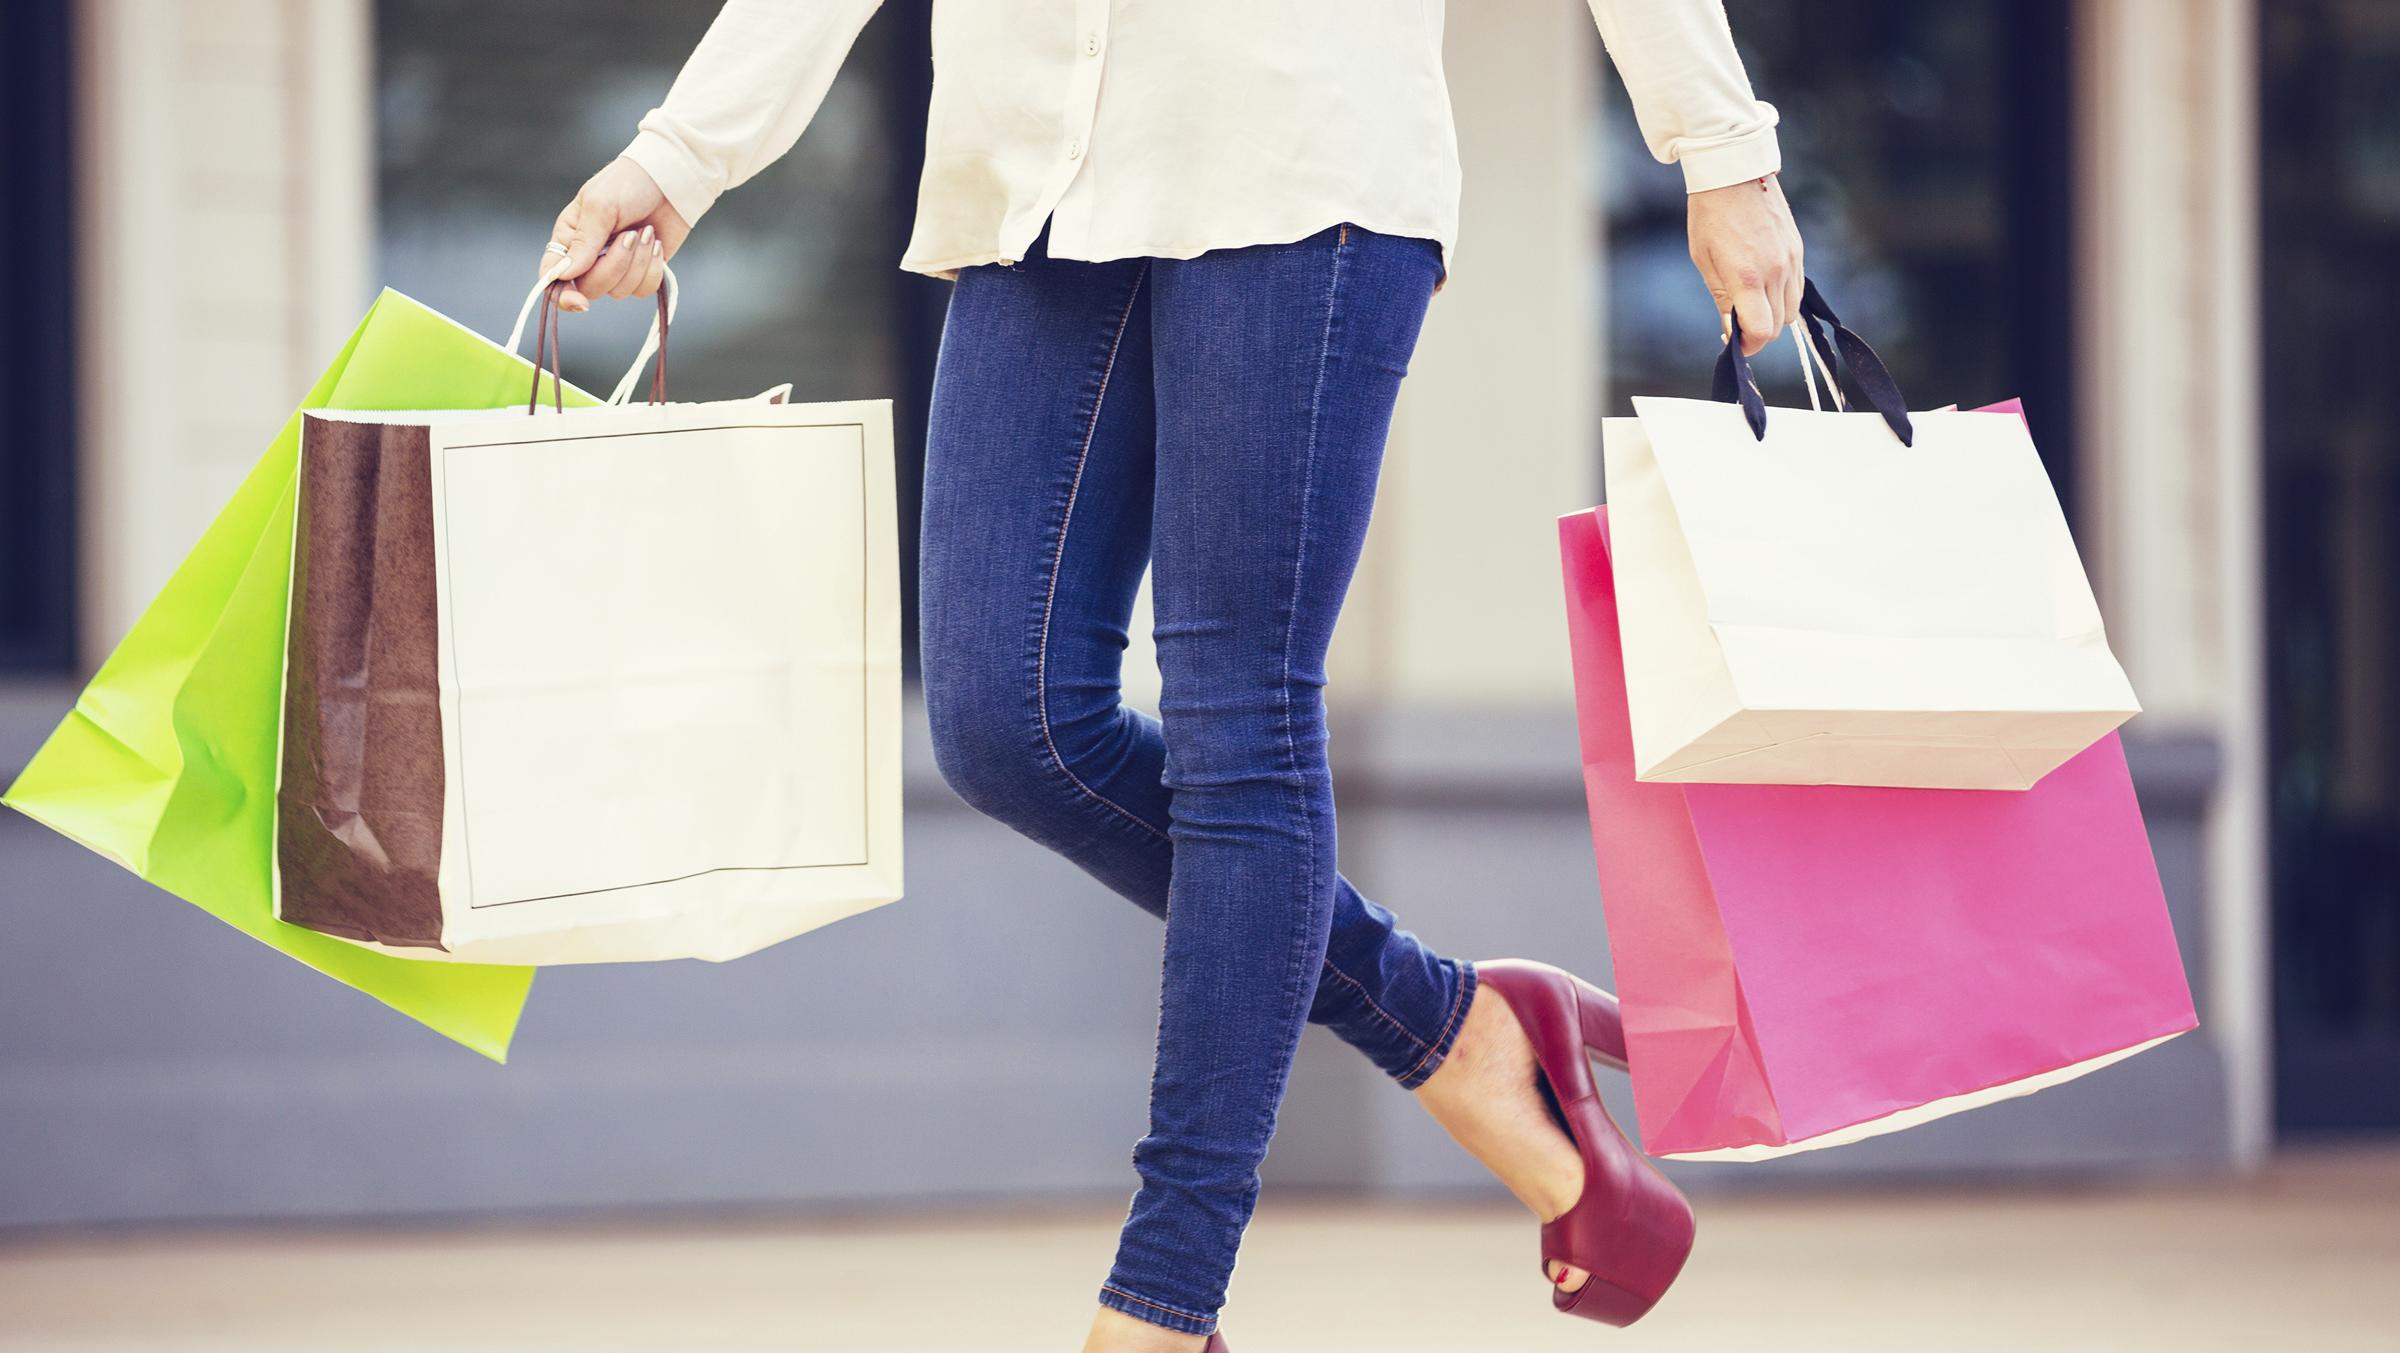 Did you shop at a store or online on Black Friday or the weekend?